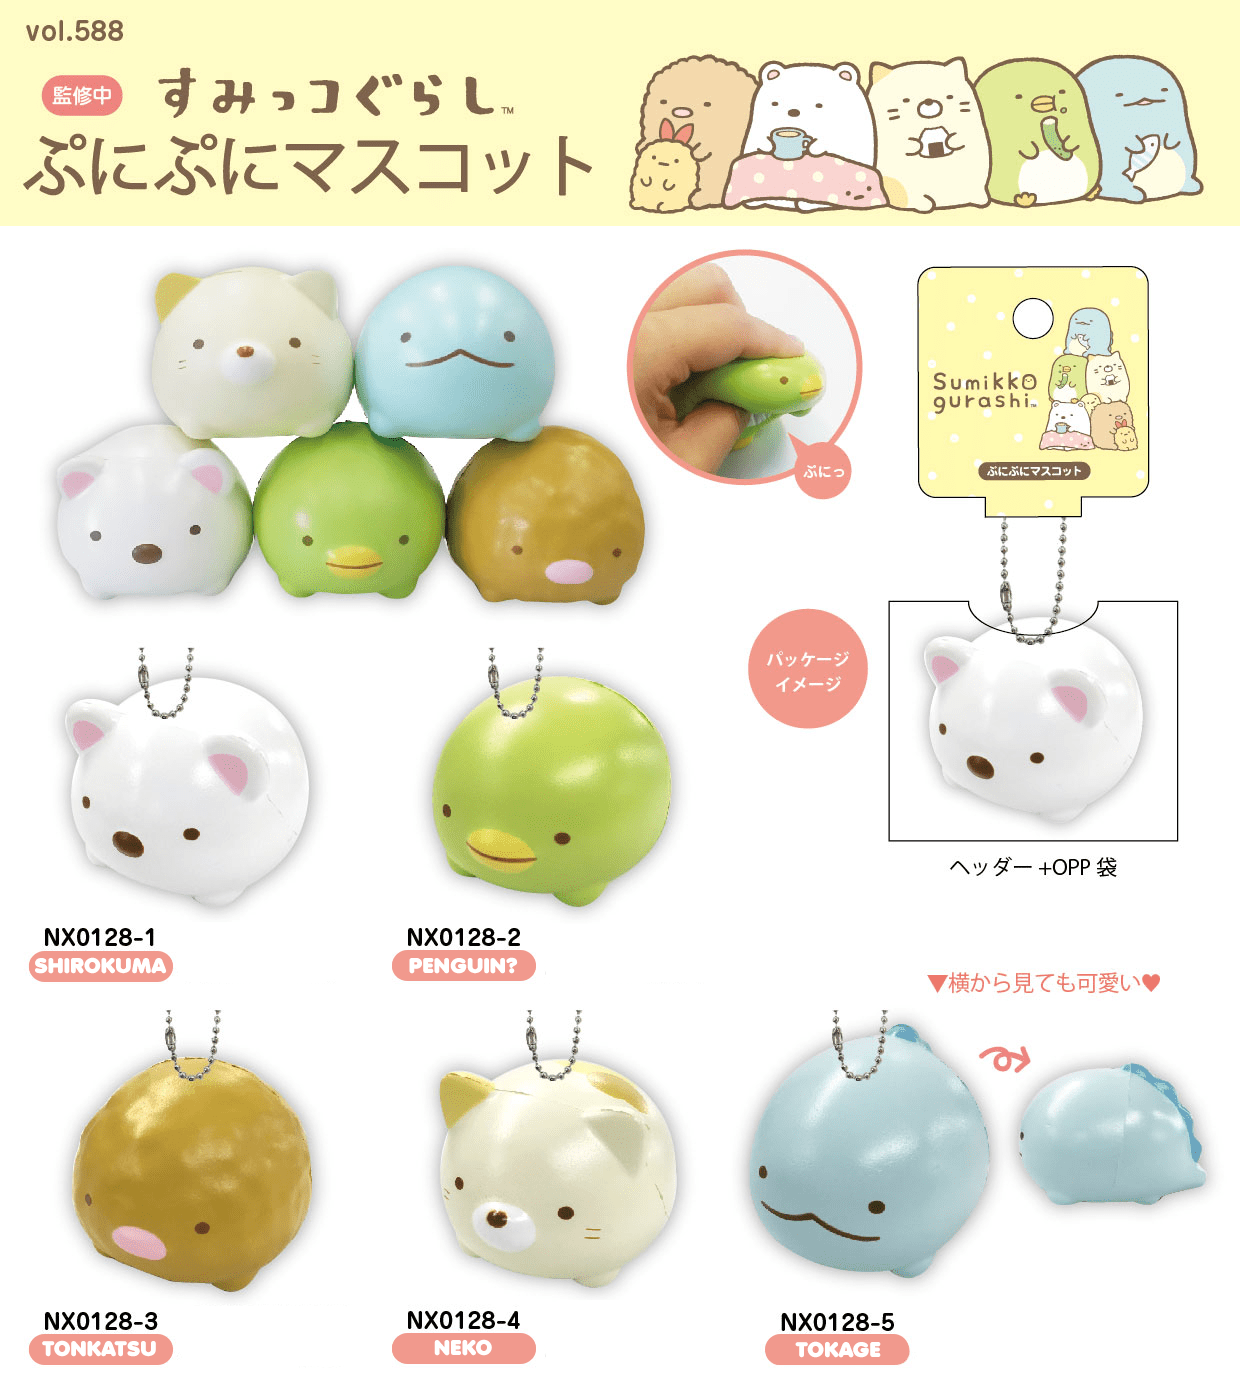 New Item Creative – Sumikko Gurashi PuniPuni Mascot